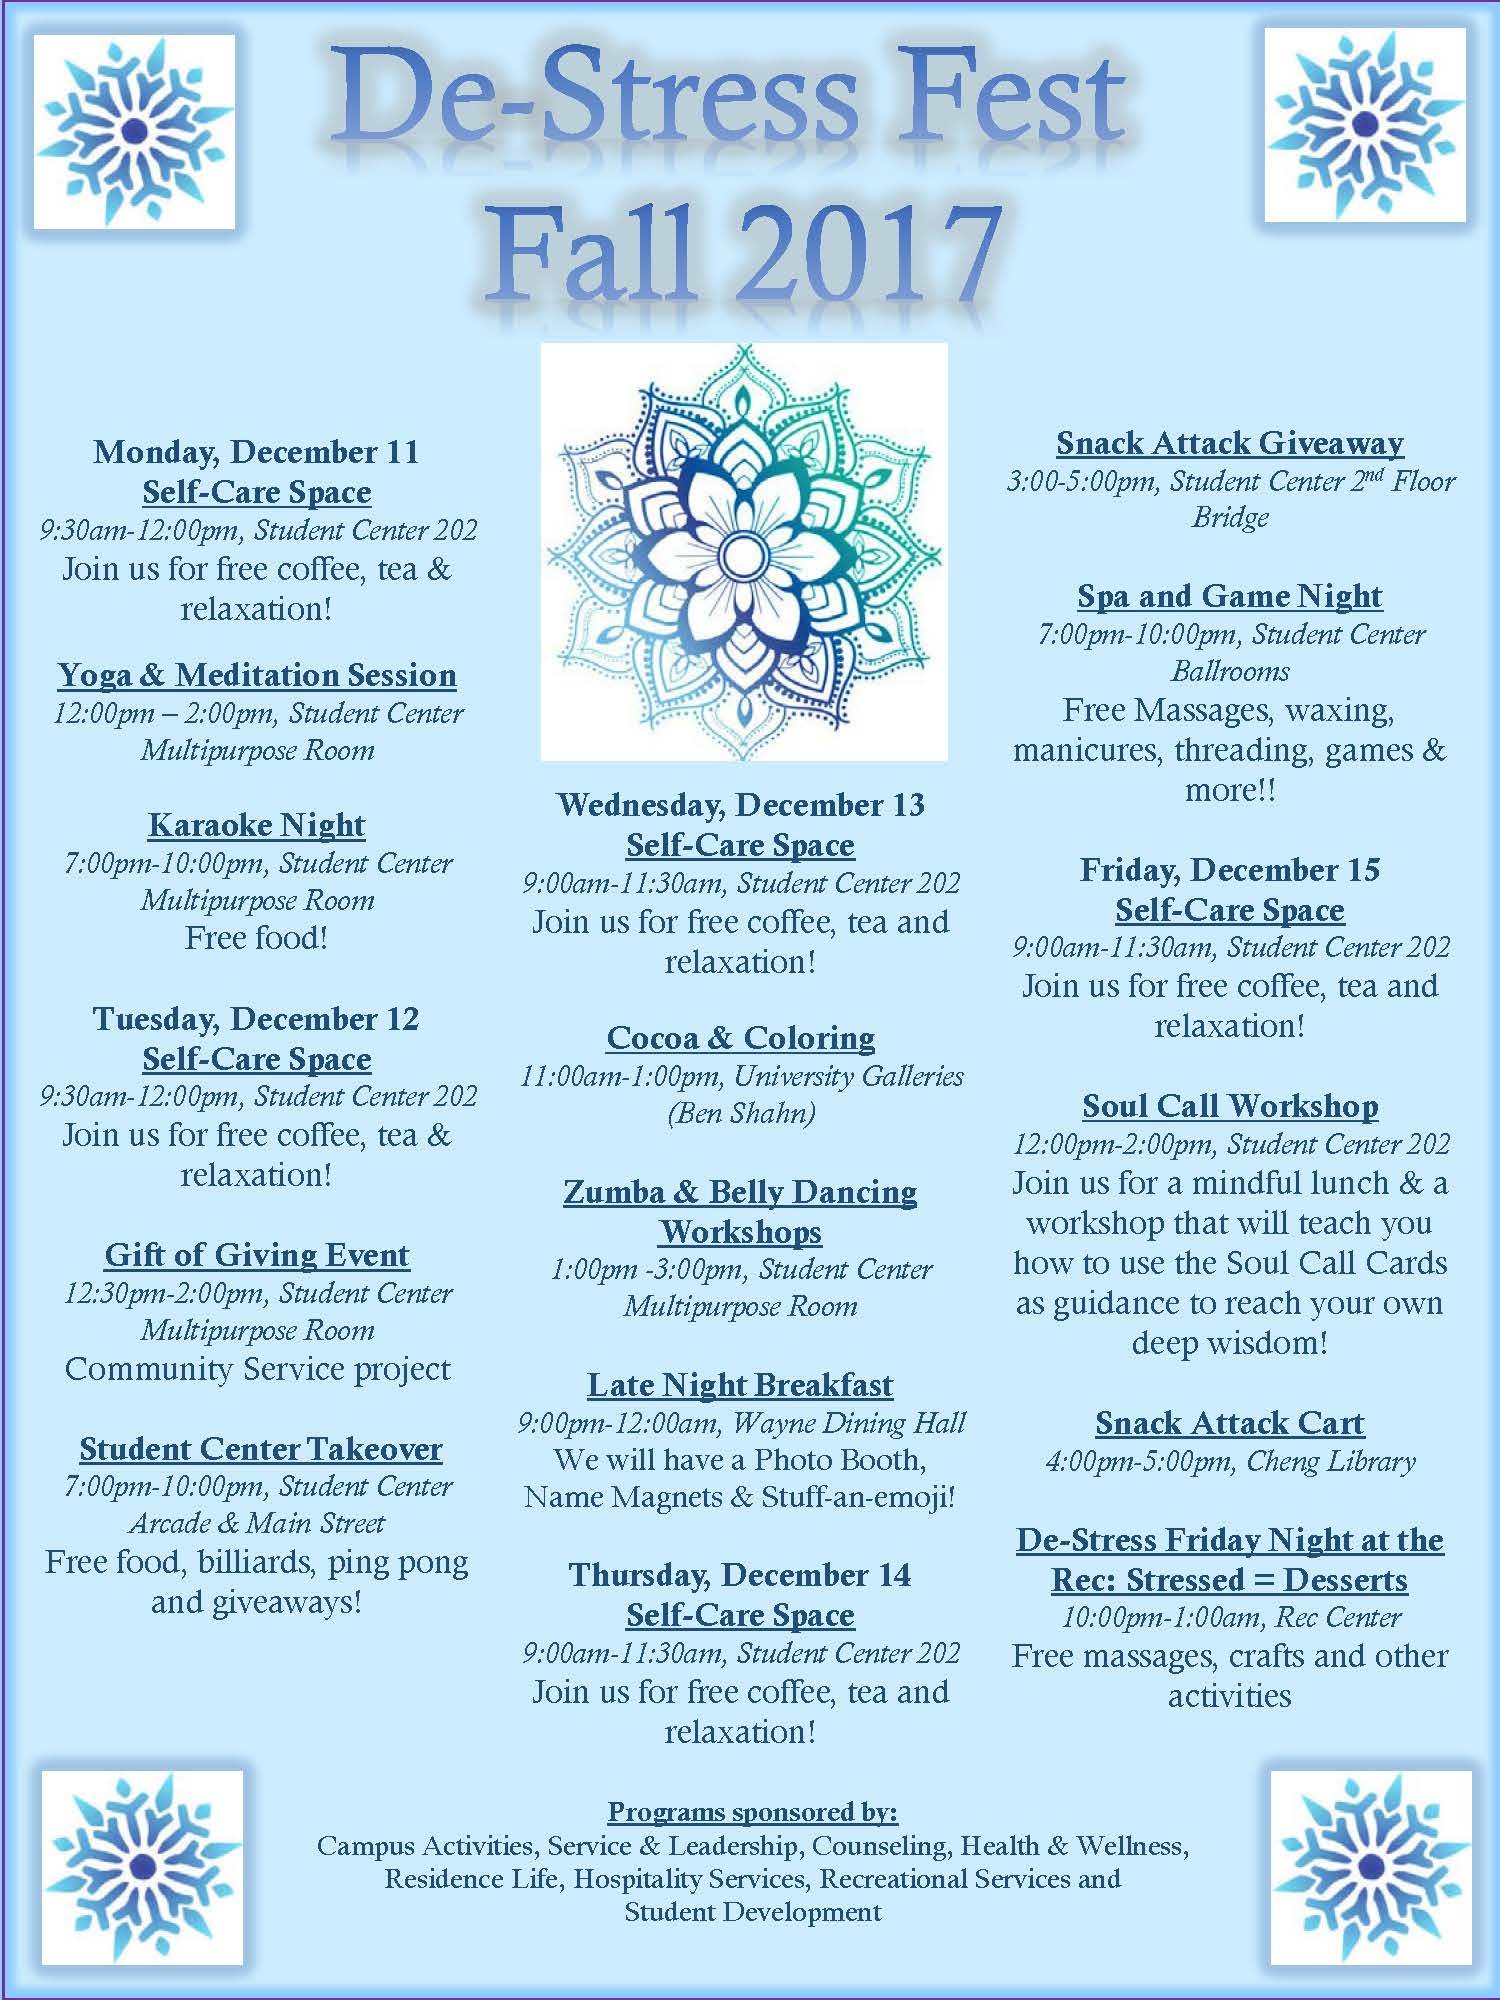 DeStress Fest Calendar 2017 12-11 to 12-15